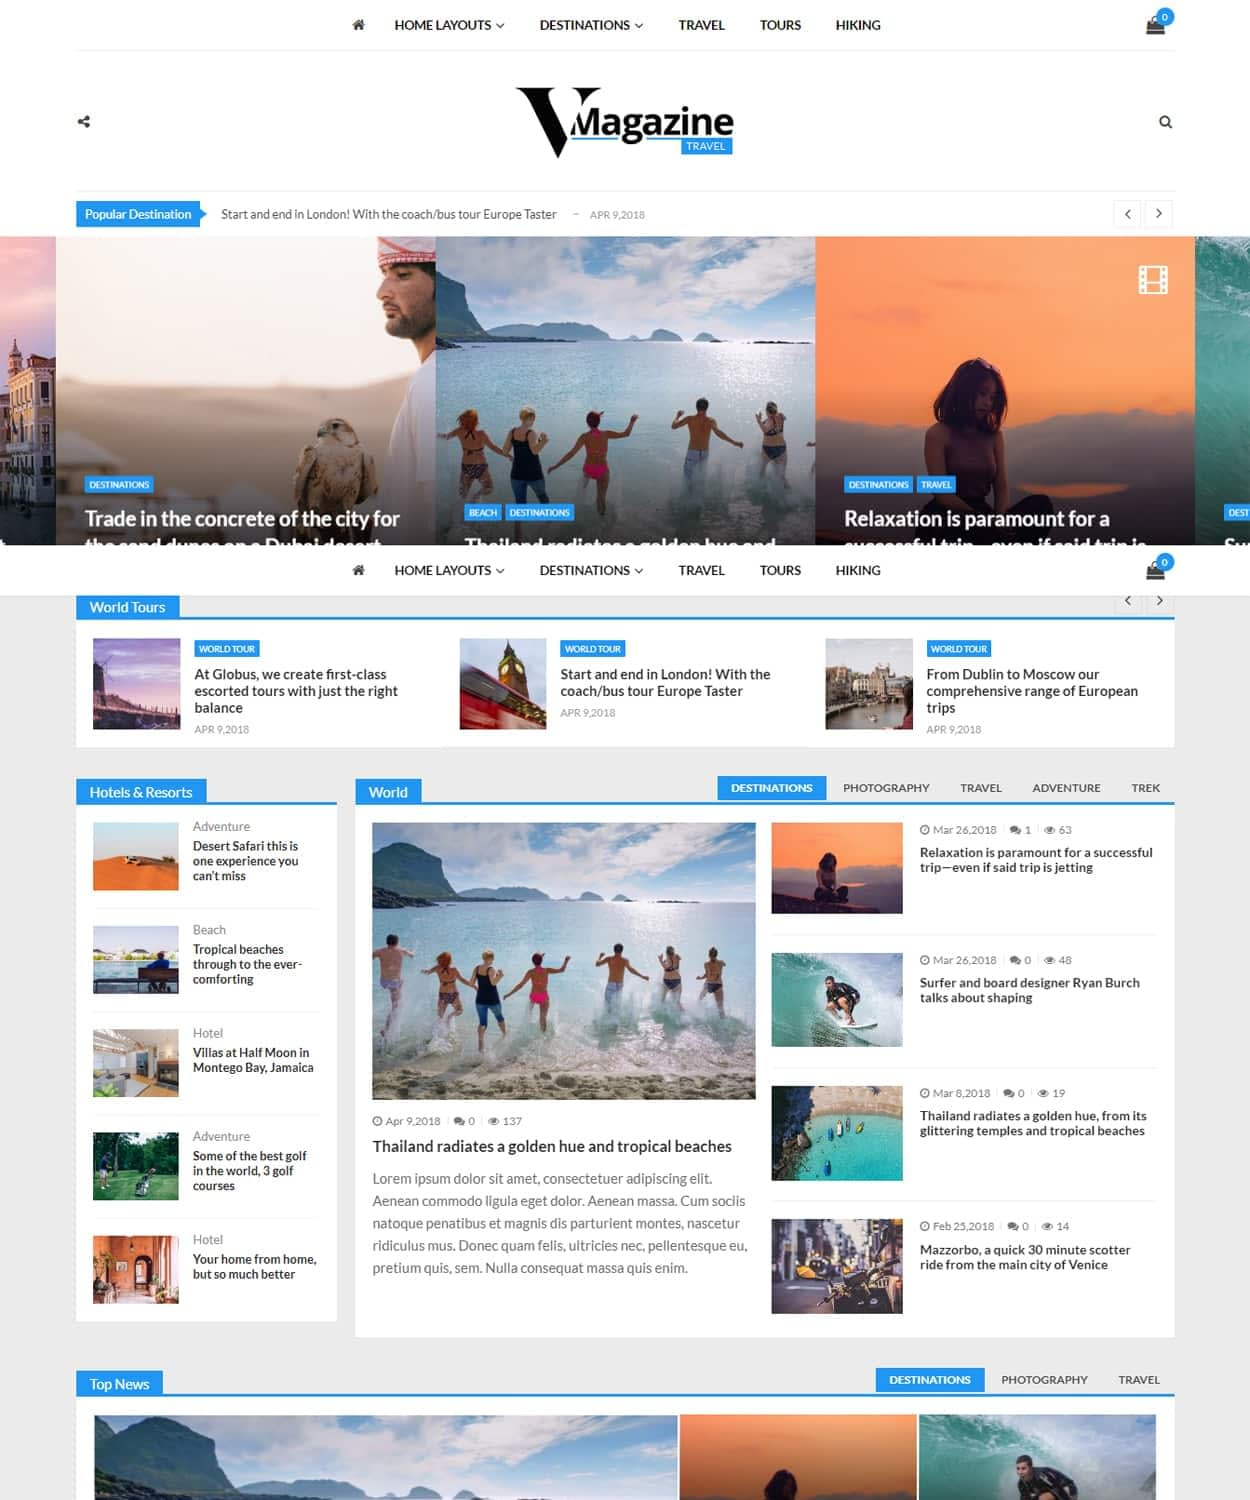 vmagazine travel - VMagazine Review - A hassle free, simple, clean and beautiful WordPress theme to start your news and magazine website